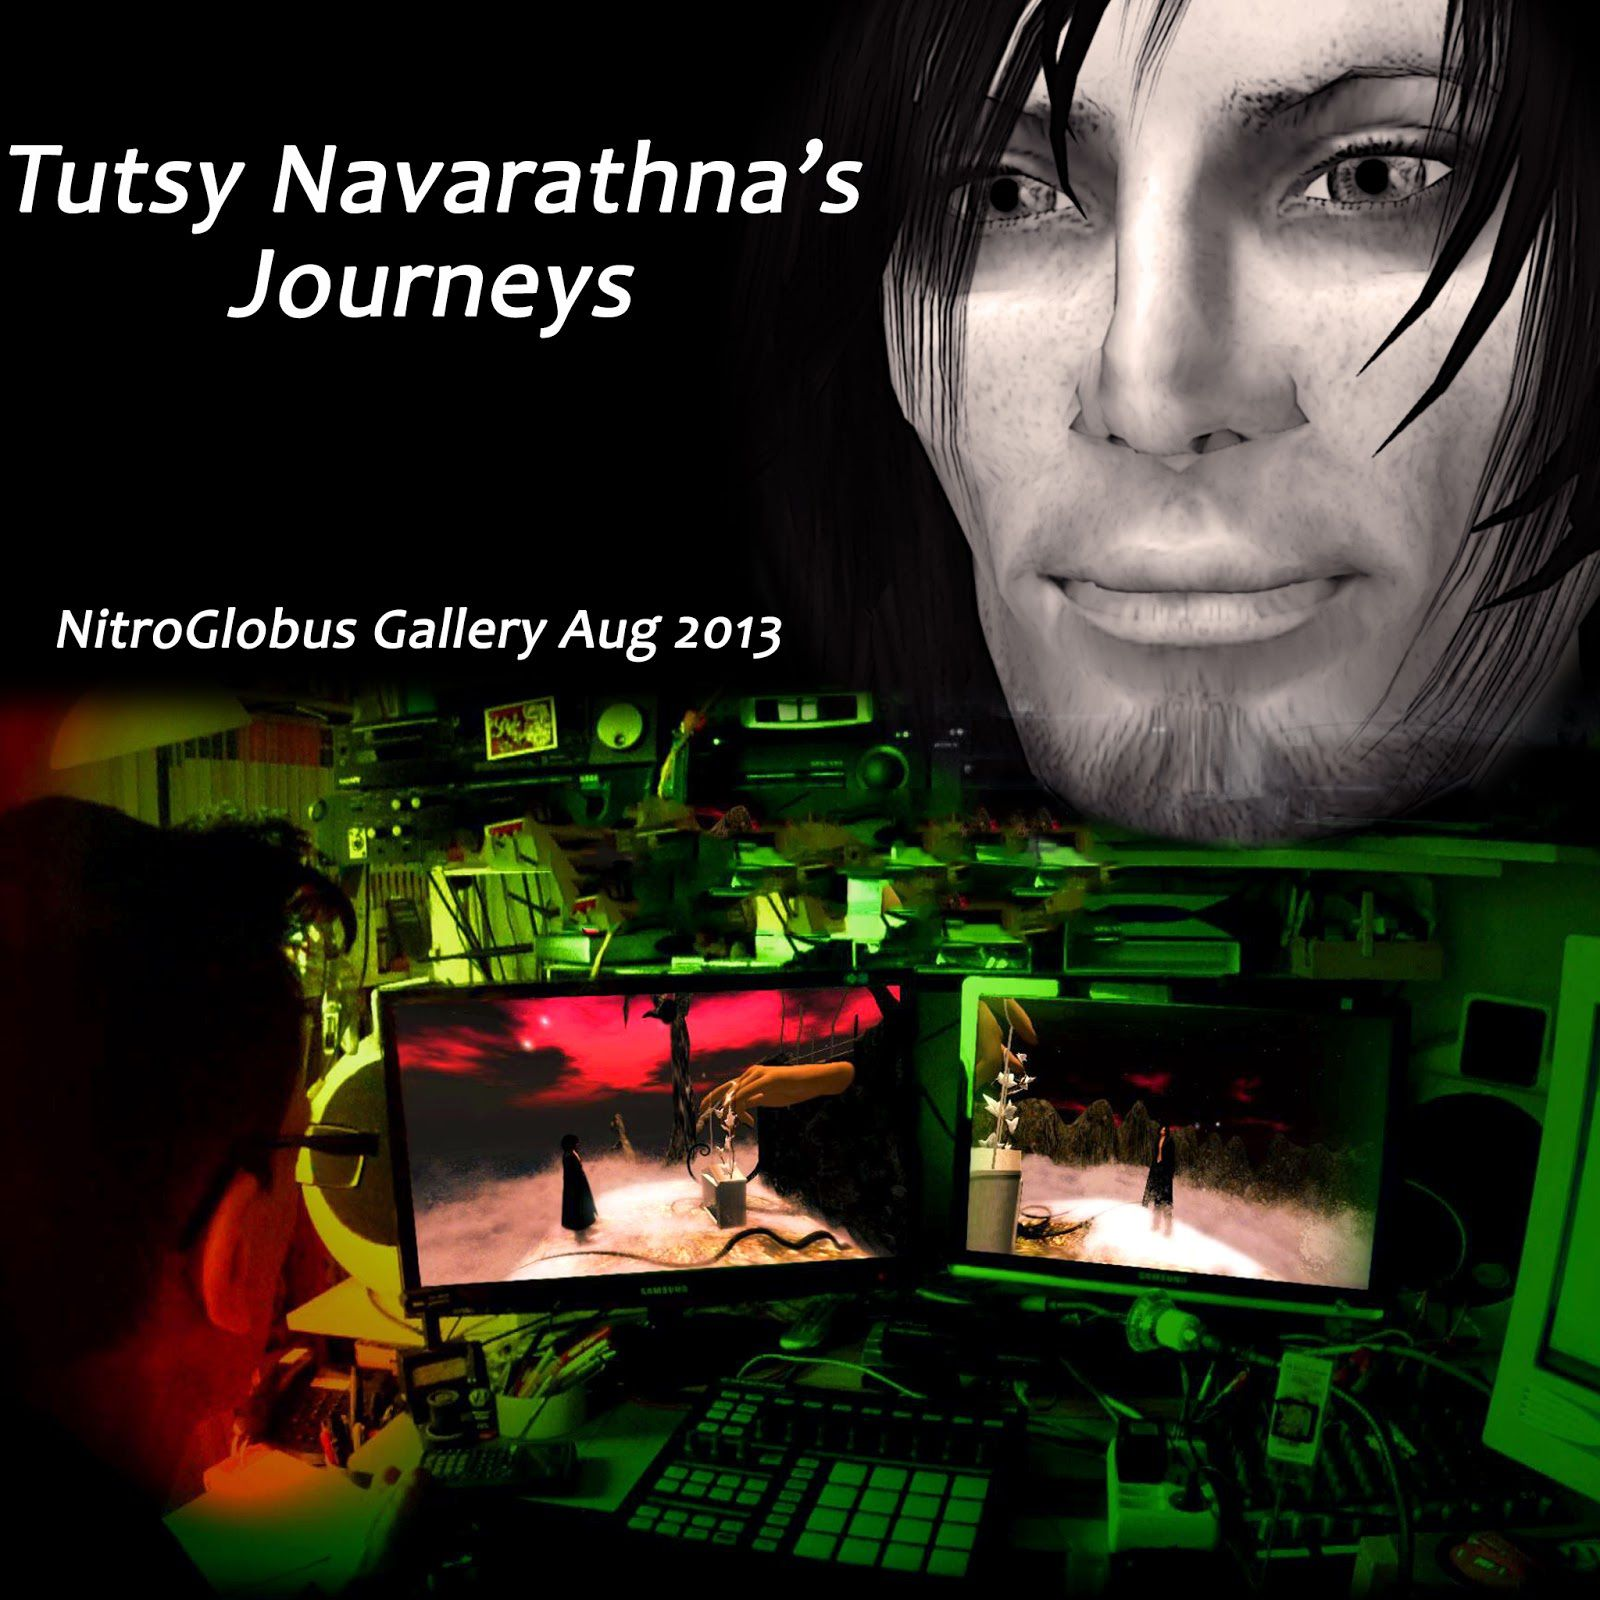 Tutsy Navarathna's Journeys